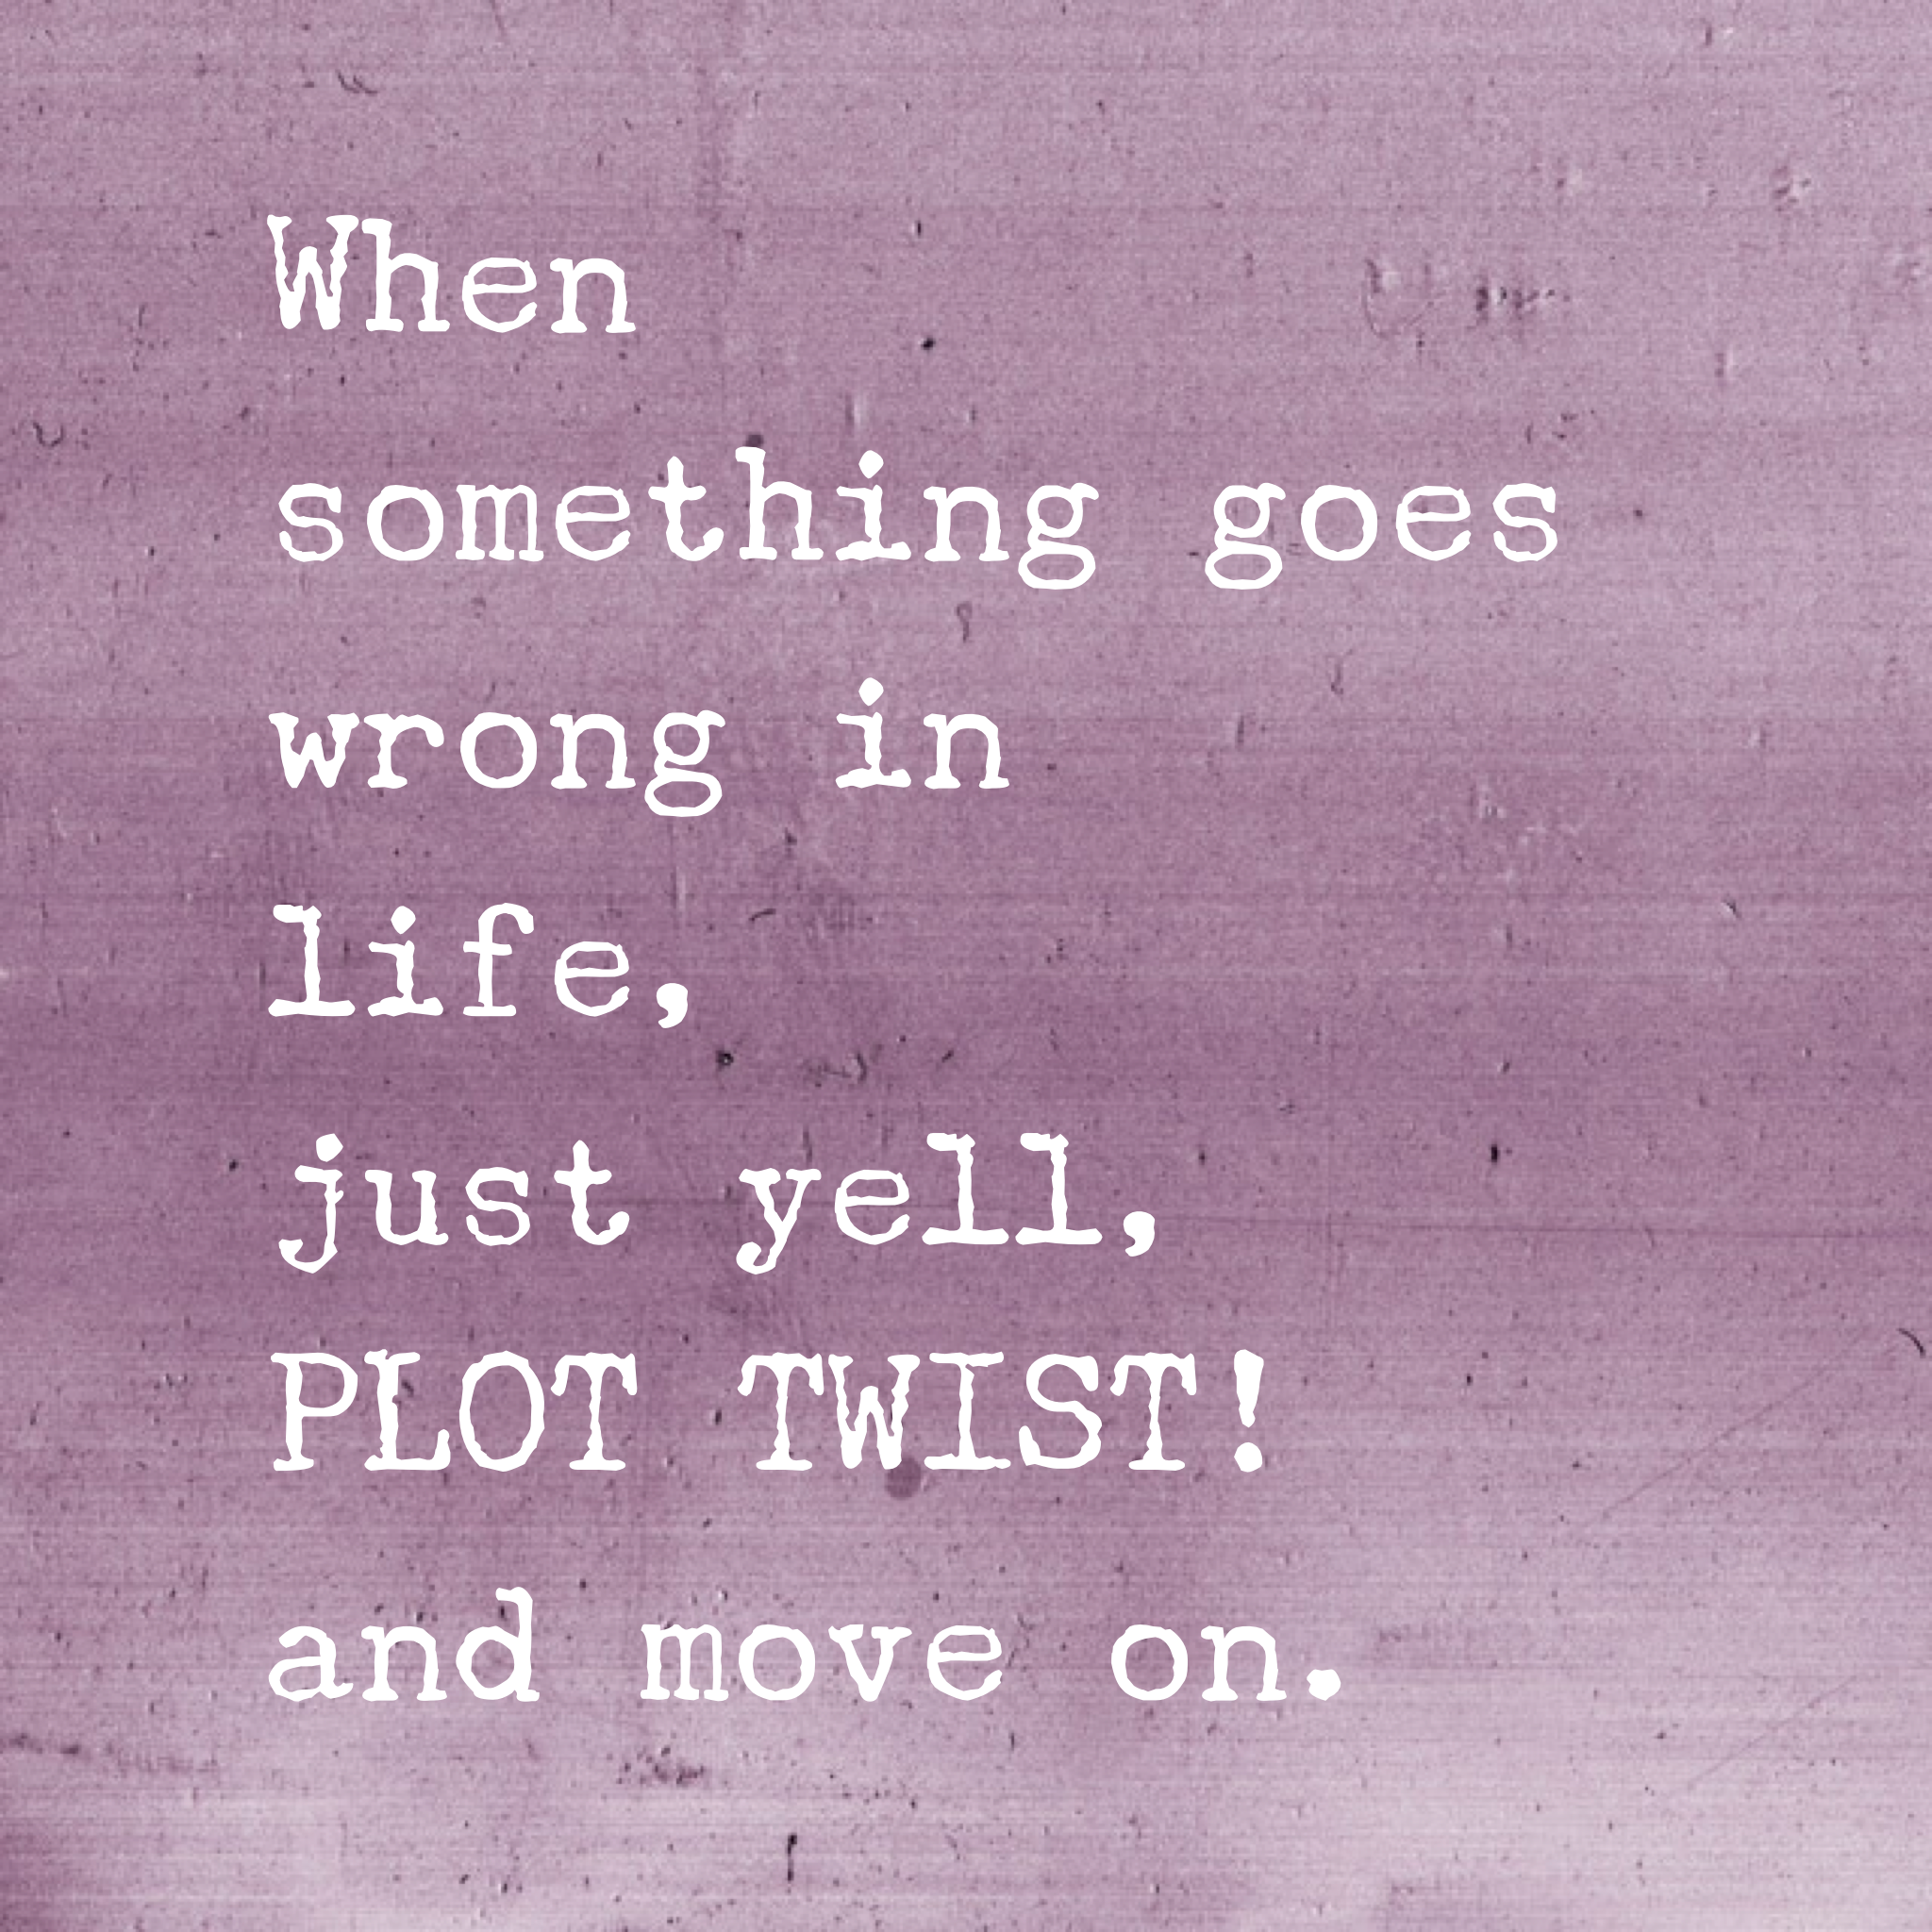 Famous Quotes With A Twist: The First Time I Stumbled Upon That Quote, I Laughed Out